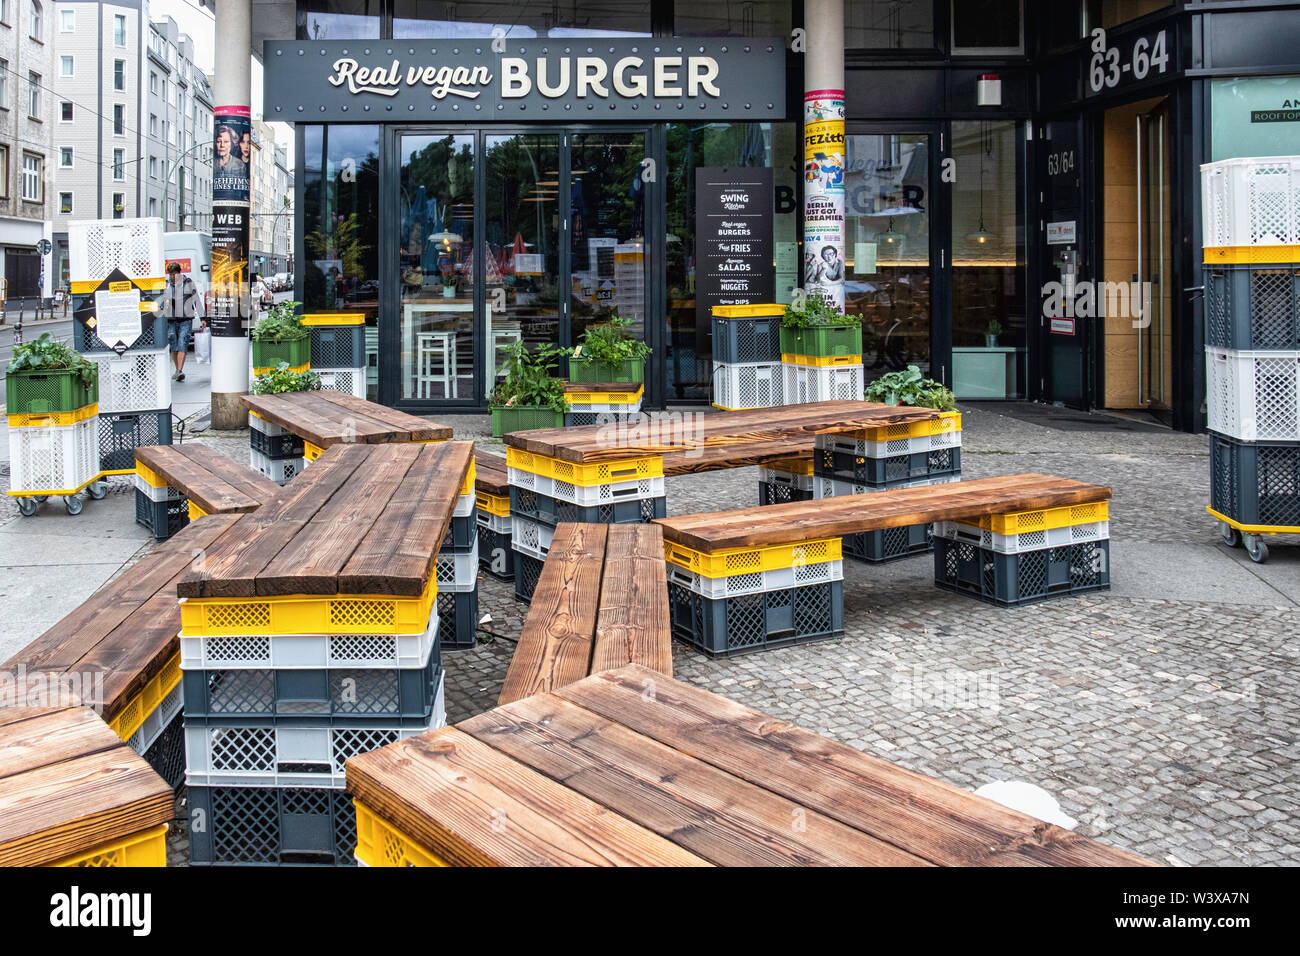 swing-kitchen-vegan-burger-restaurant-in-rosenthaler-str-mitte-berlin-W3XA7N.jpg